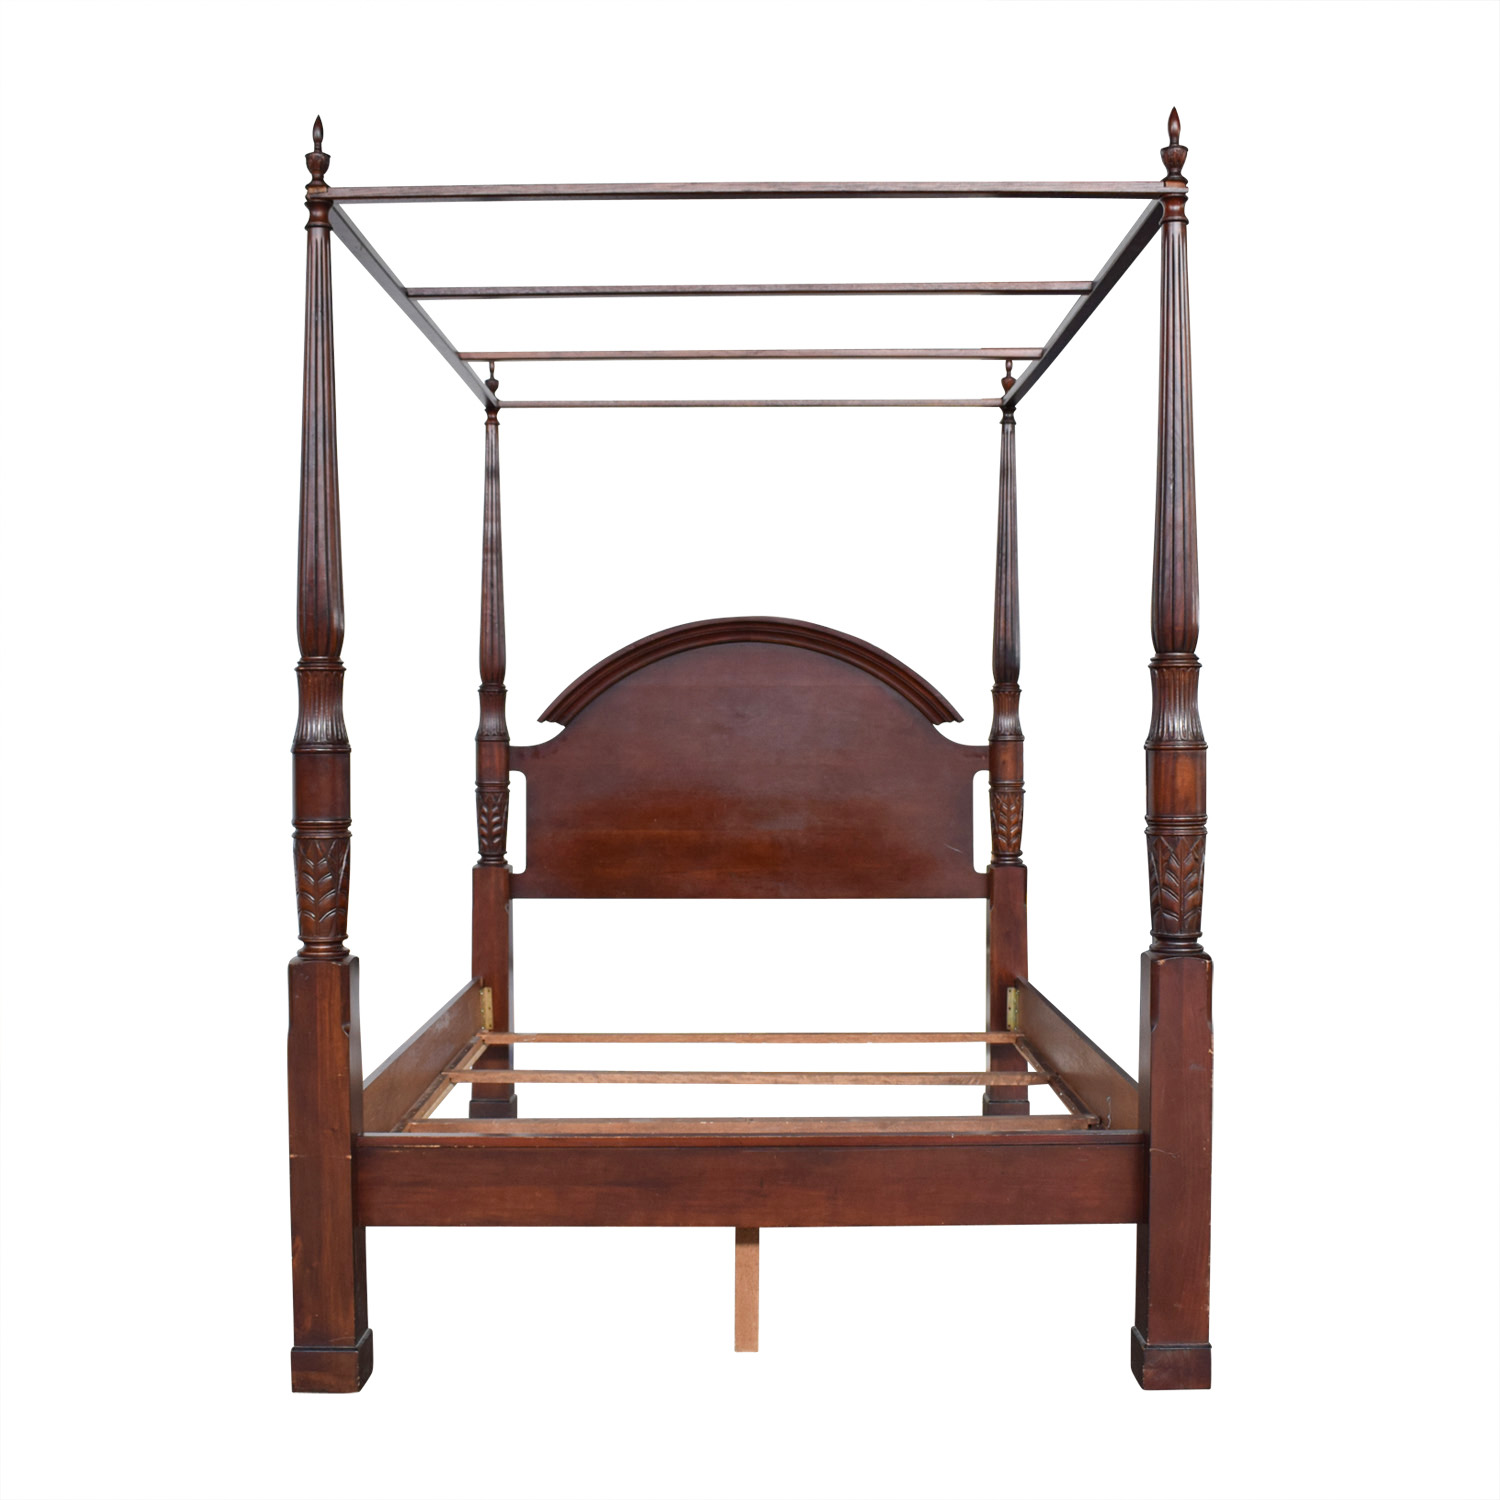 Wood Four Poster Beds Canopy Bed Wood And Wood Canopy Bed Wood Canopy Bed Frame Queen